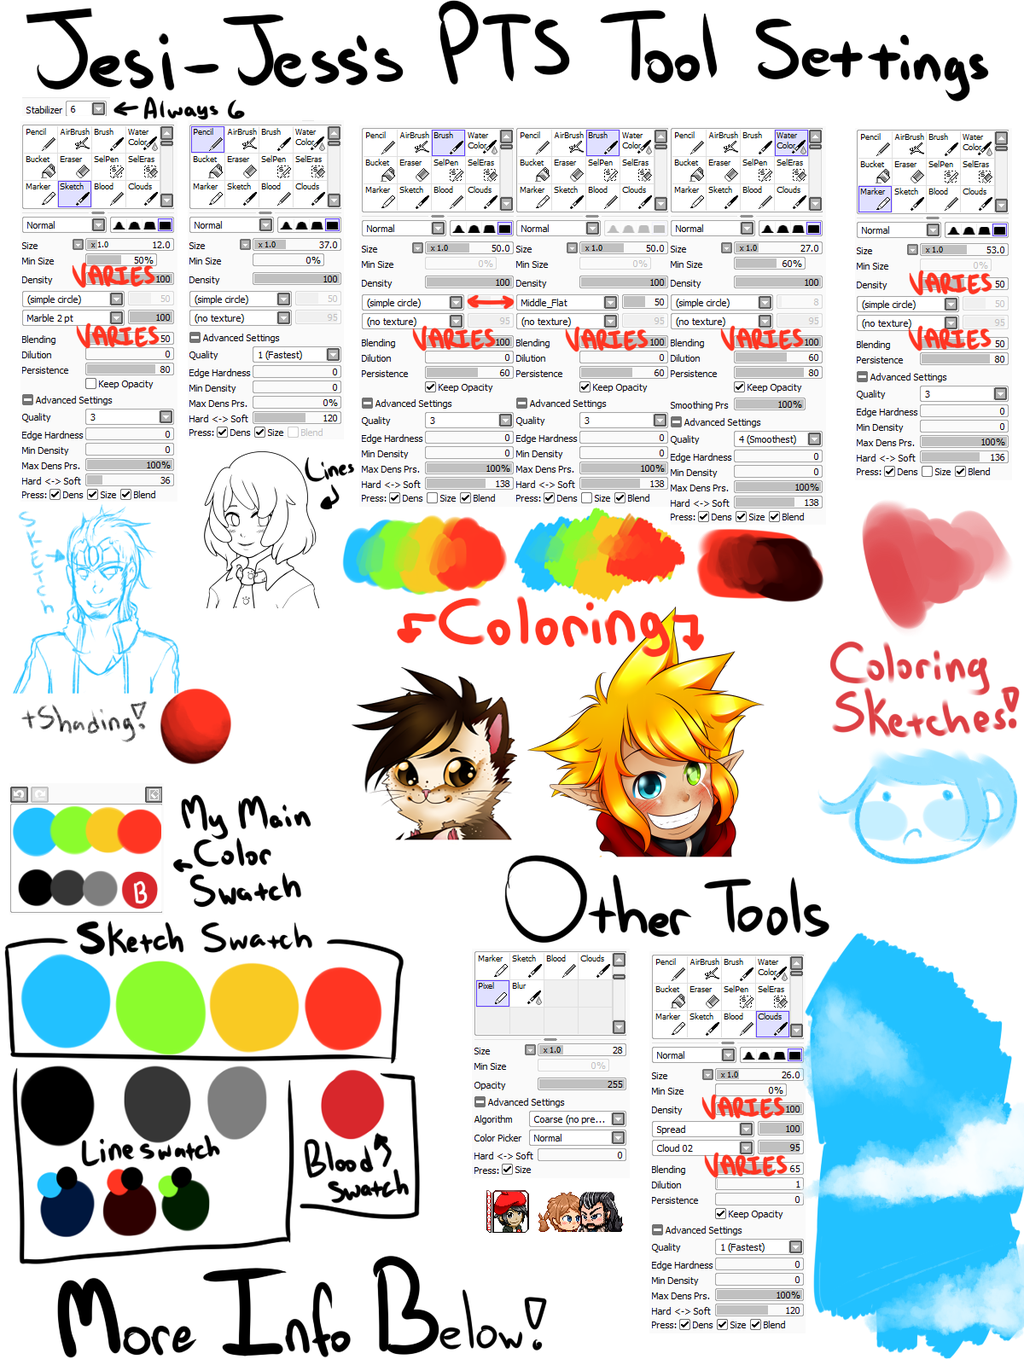 Paint Tool Sai 2 Free Download Full Version : paint, download, version, Paint, Deviantart, PaintTool, Brushes, Textures., 2019-02-12